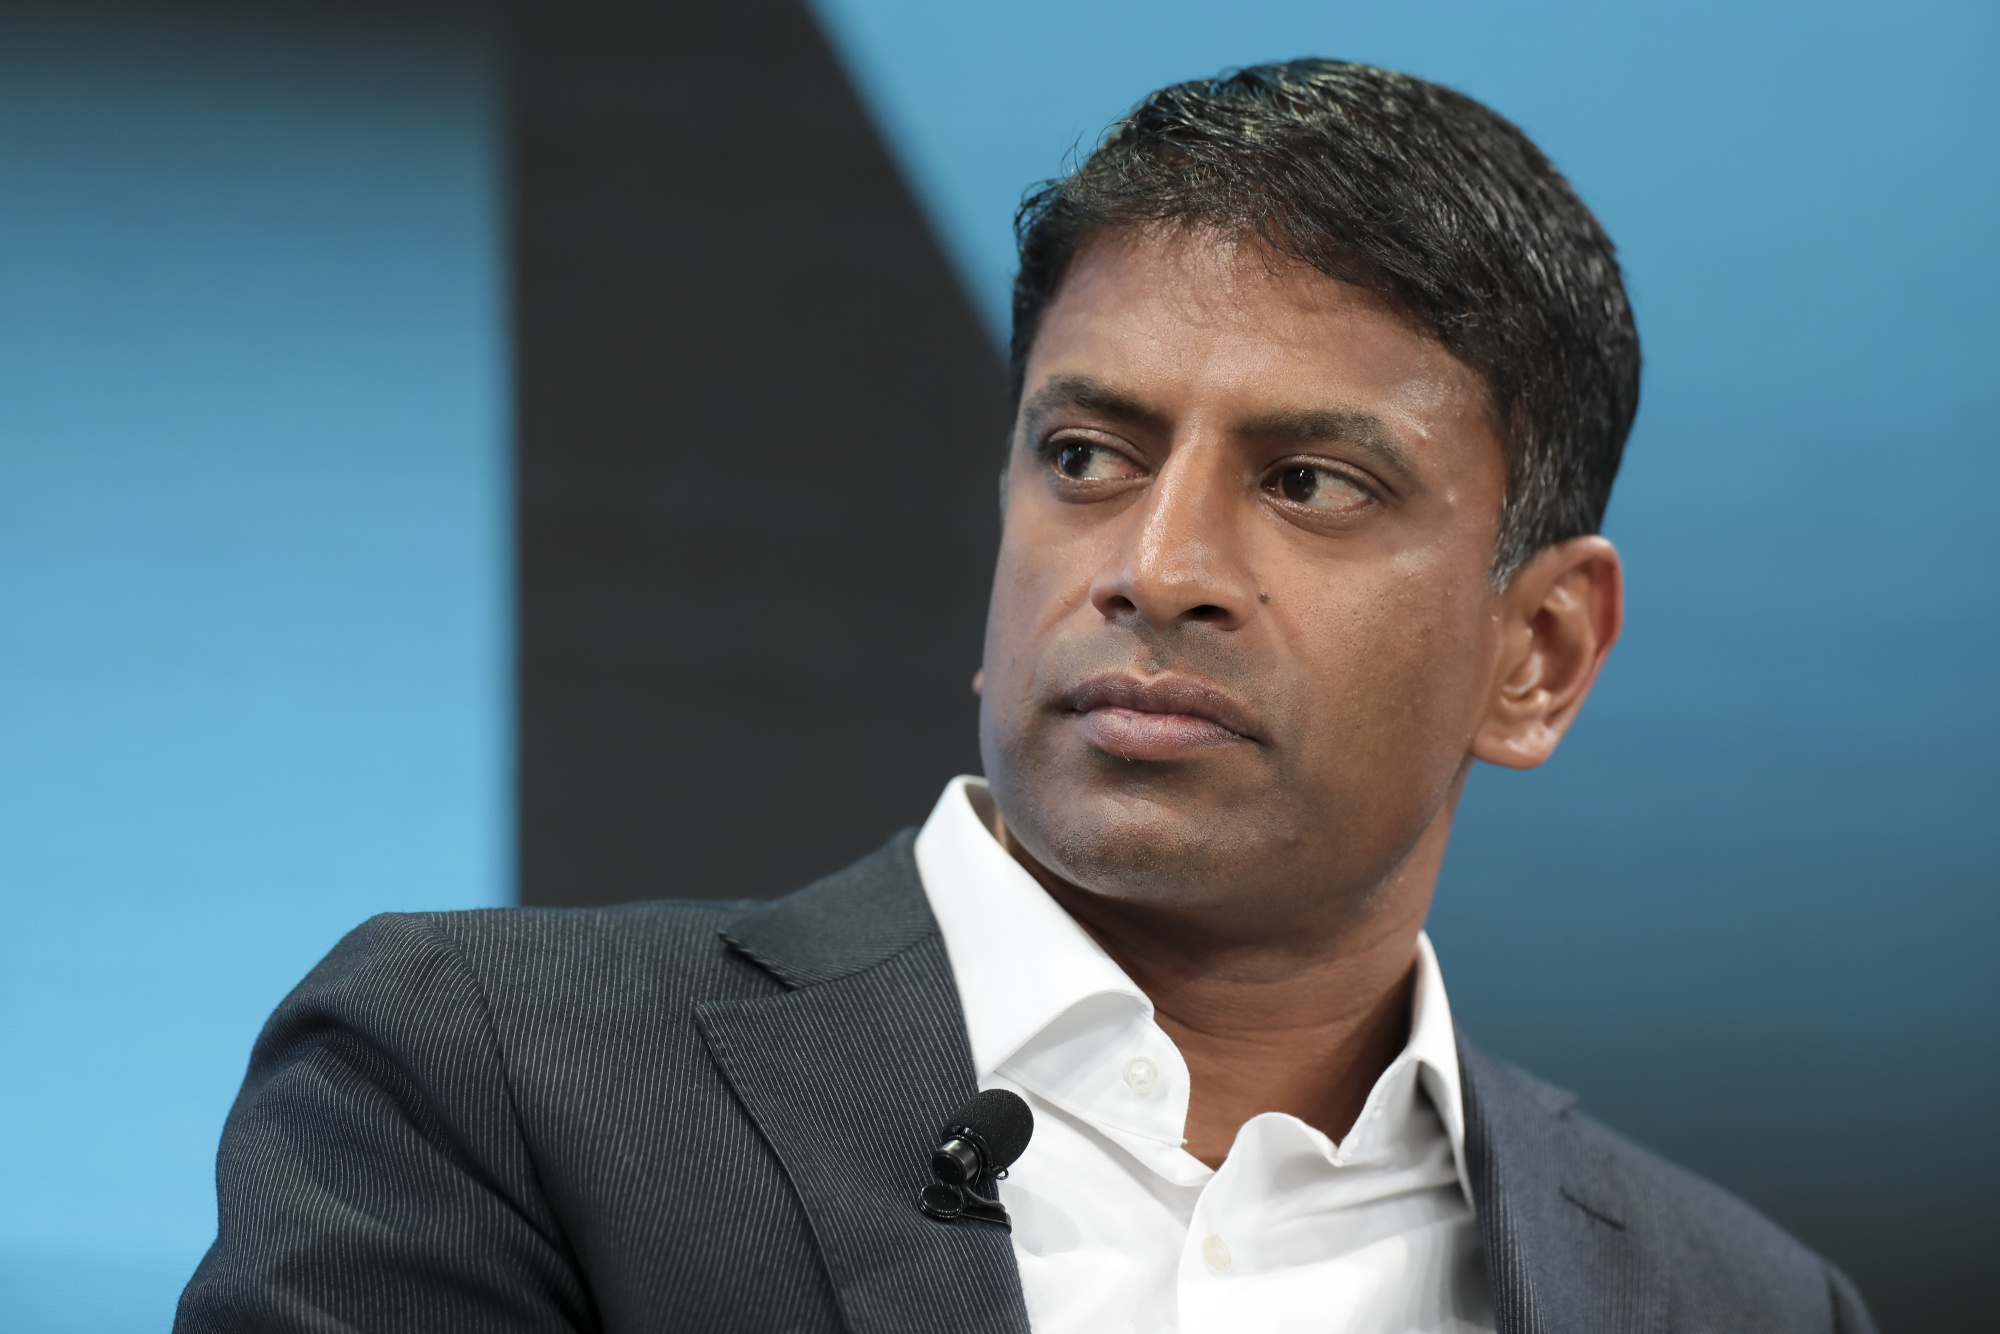 Novartis CEO Says It'll Take More Than Vaccines to Fight Covid